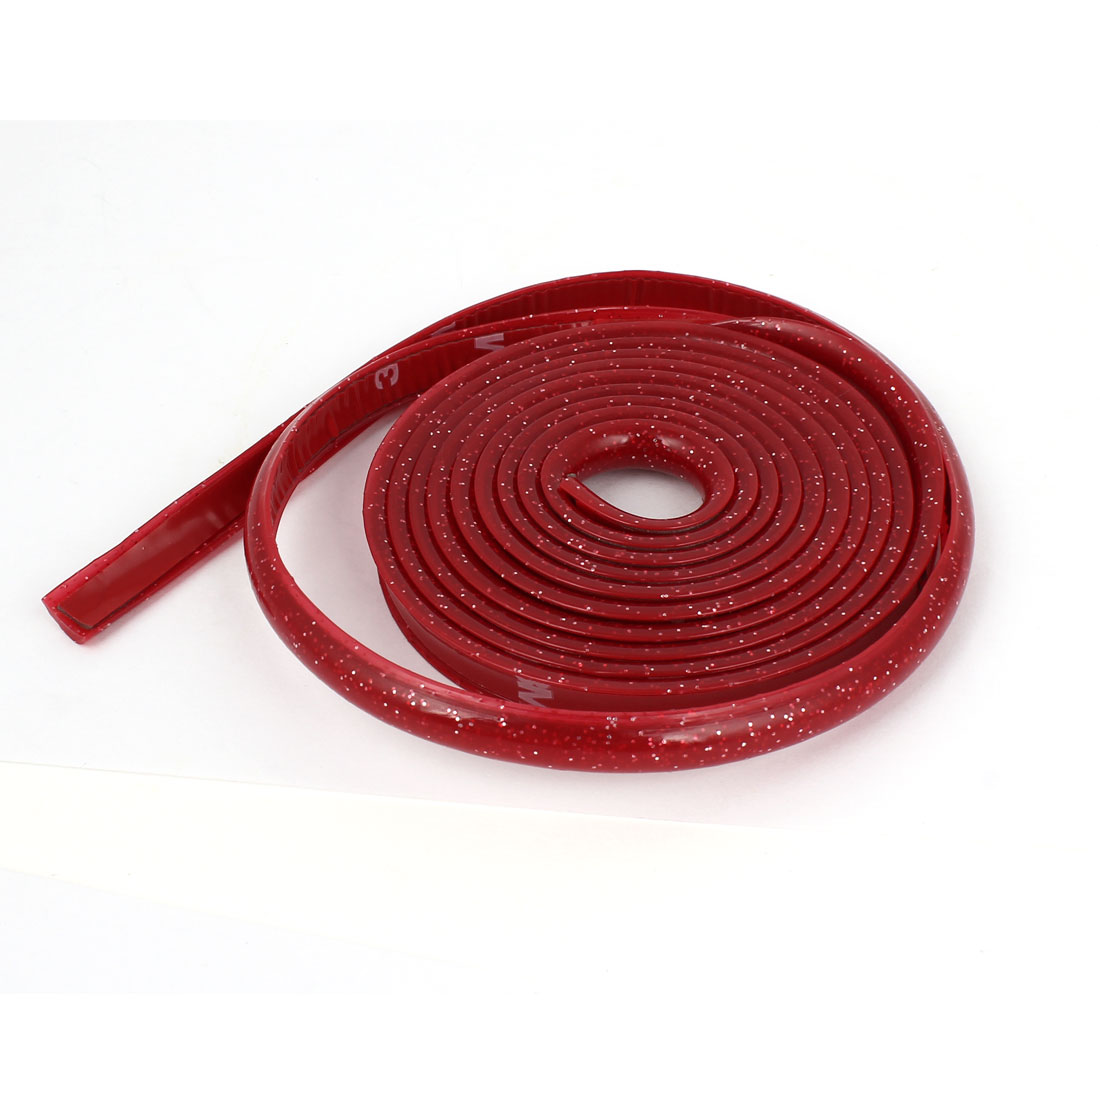 Glitter Red Interior Flexible Shift Knob Trim Car Moulding Trim Strip 2 Meter